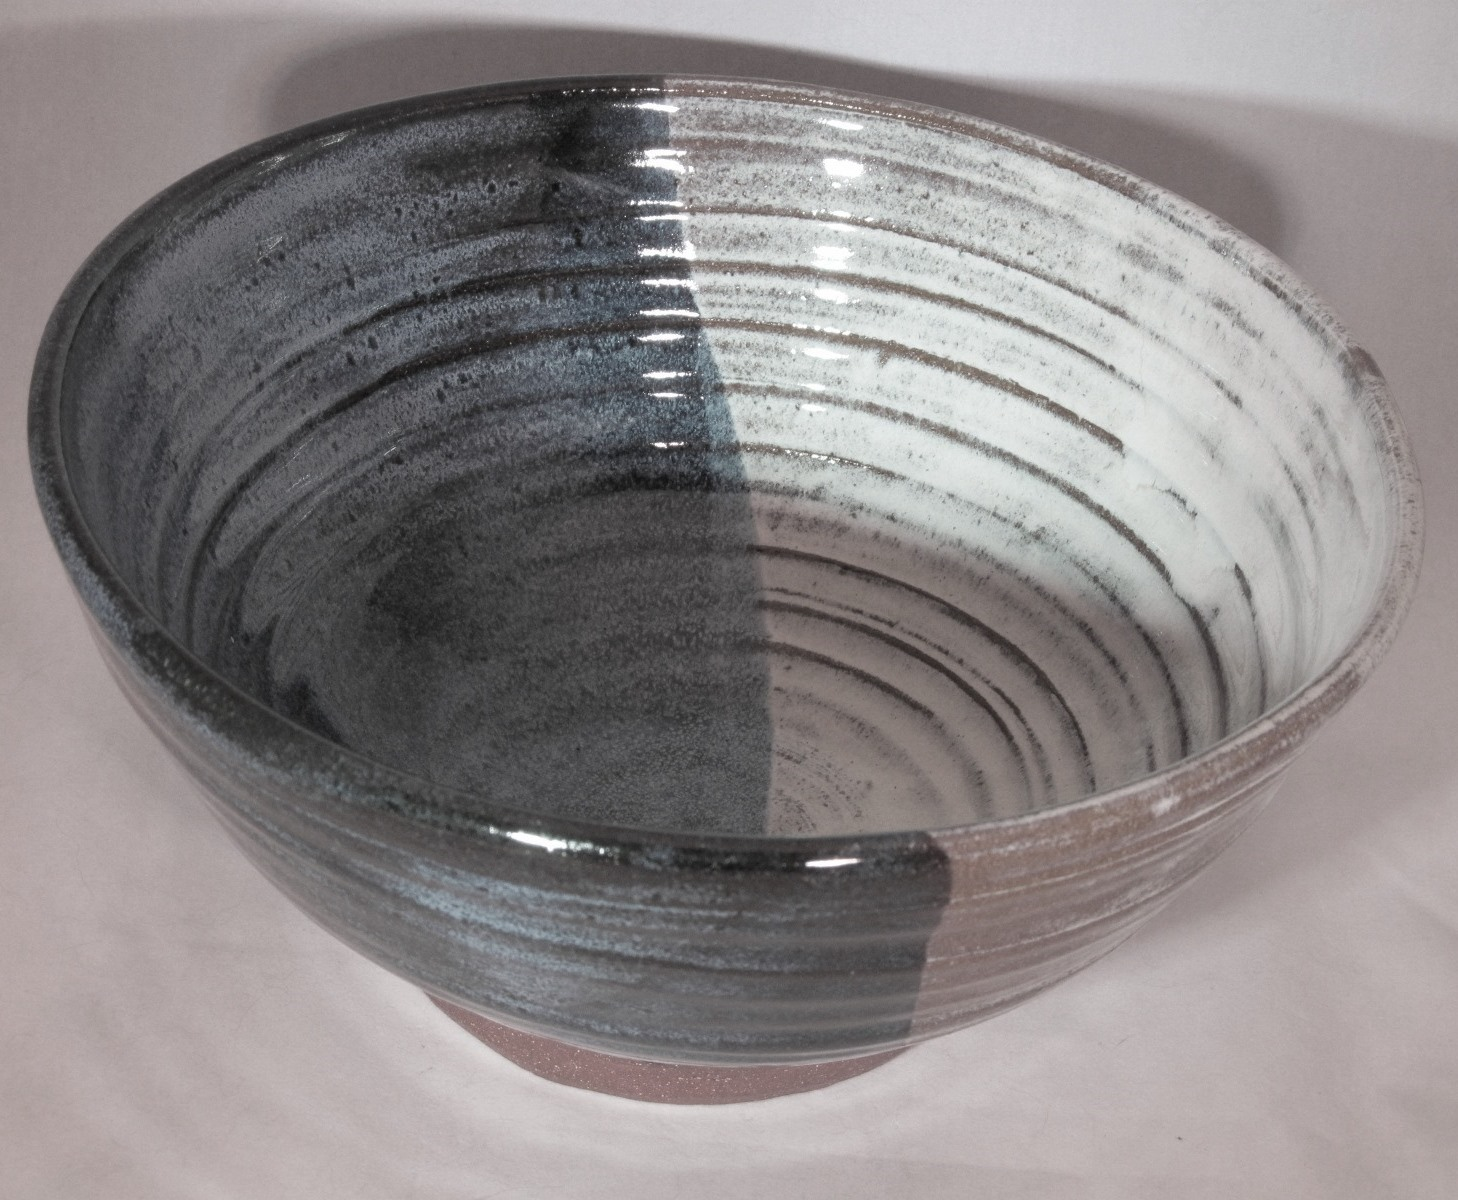 Autumn leaf serving bowl